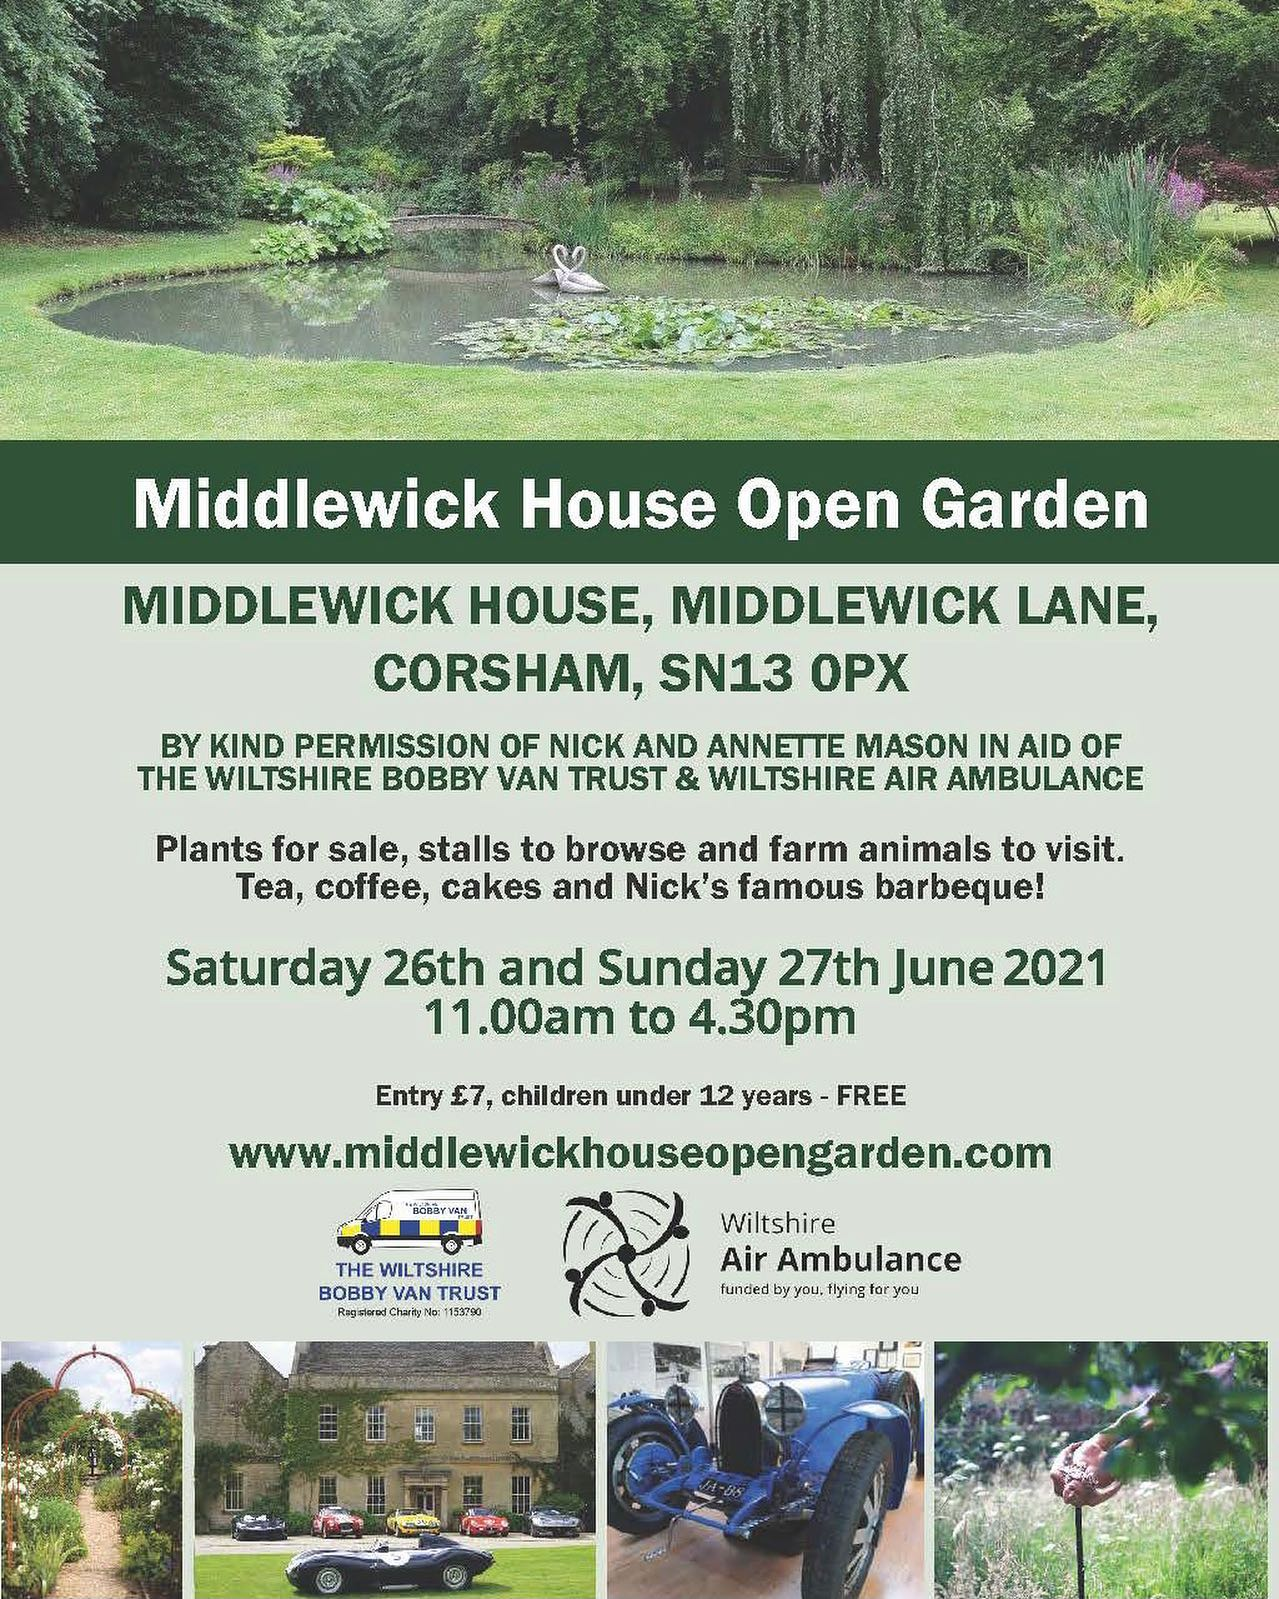 We will be taking part in this wonderful local event in a few weeks time.Middlewick House is a stunning location for spending the day shopping eating, drinking admiring classic cars, and taking in the beautiful surroundings. 11-4.30 Saturday 26th and Sunday 27th JuneProceeds go to charity.